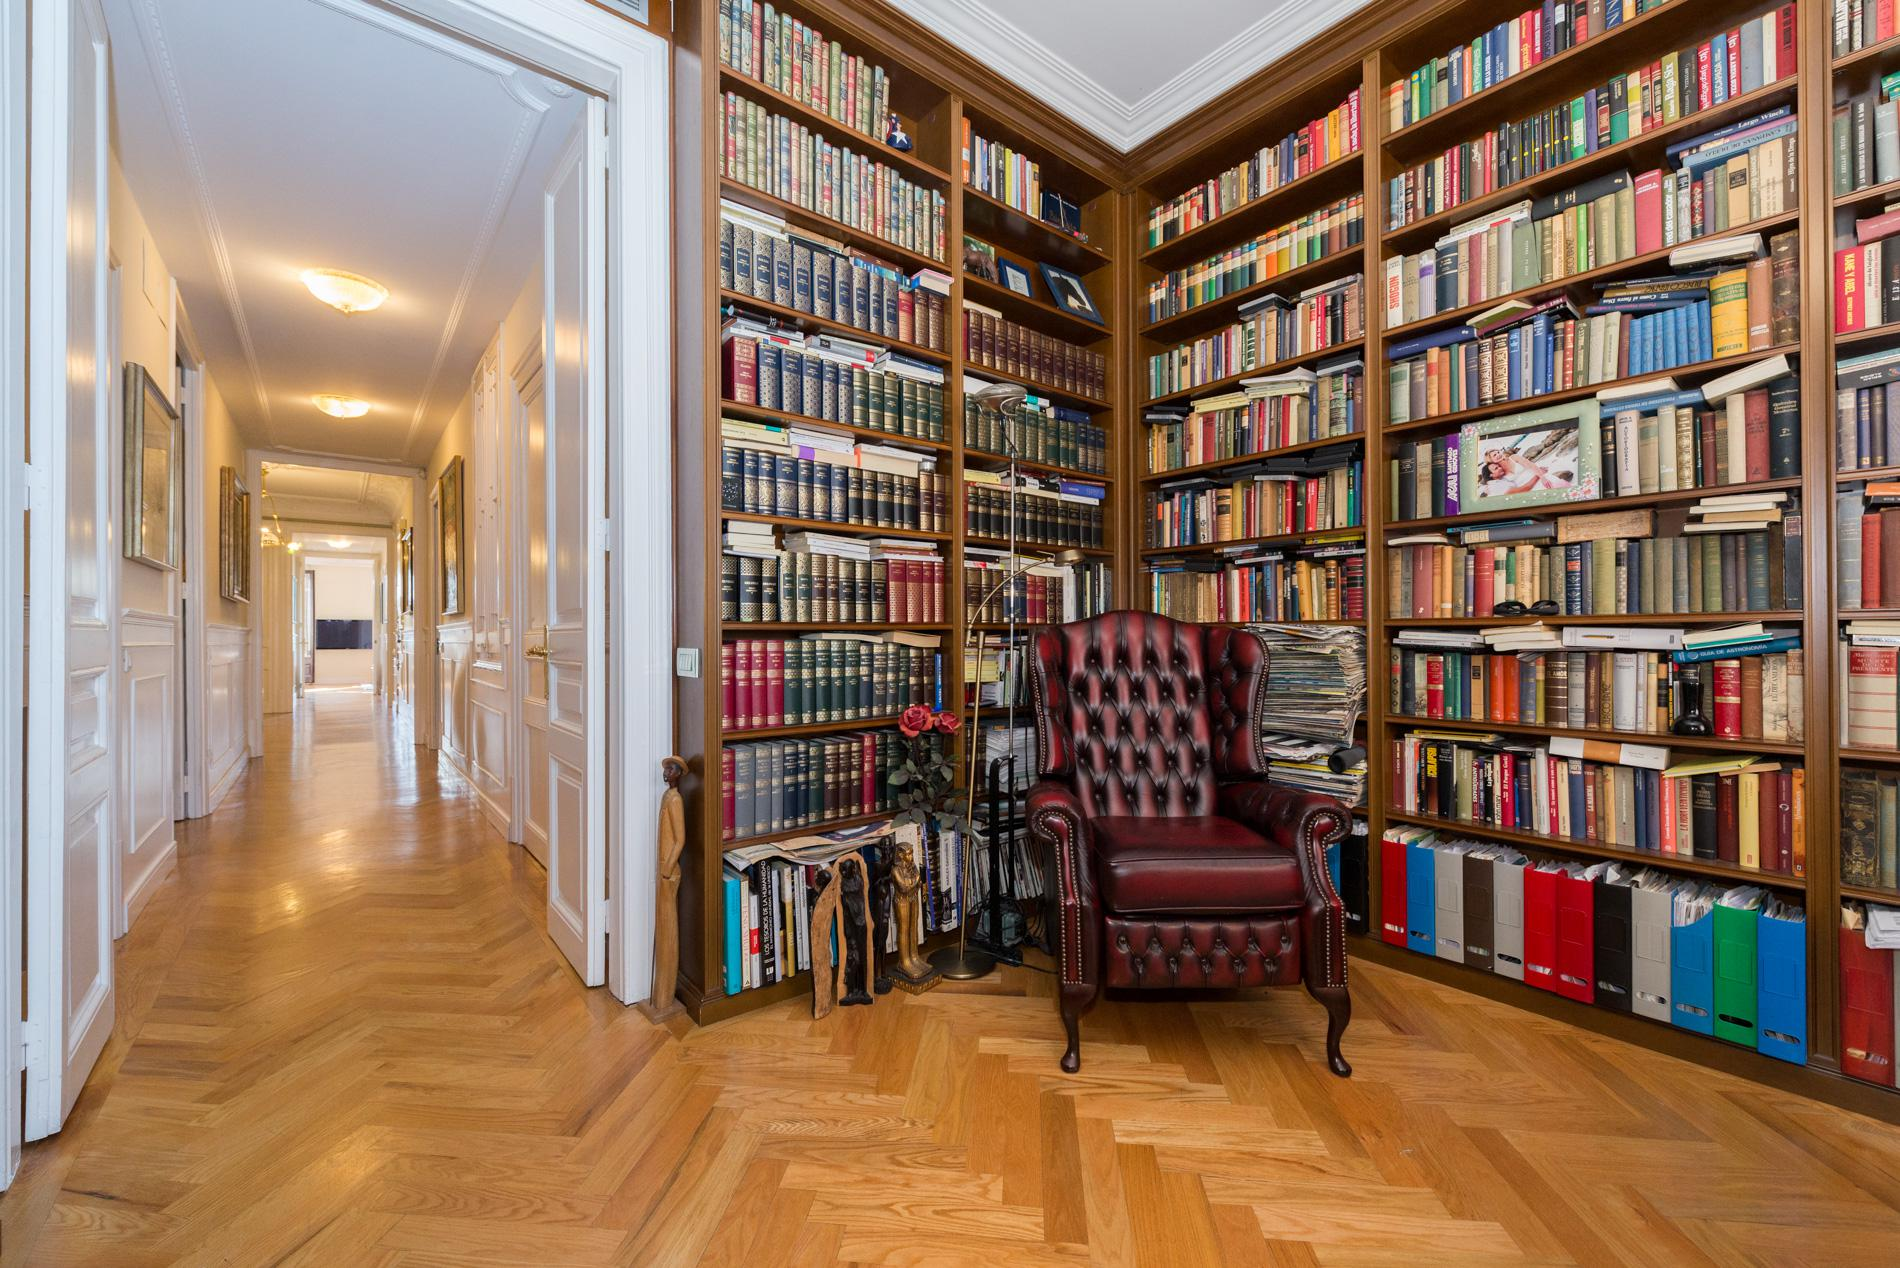 174066 Flat for sale in Eixample, Antiga Esquerre Eixample 5